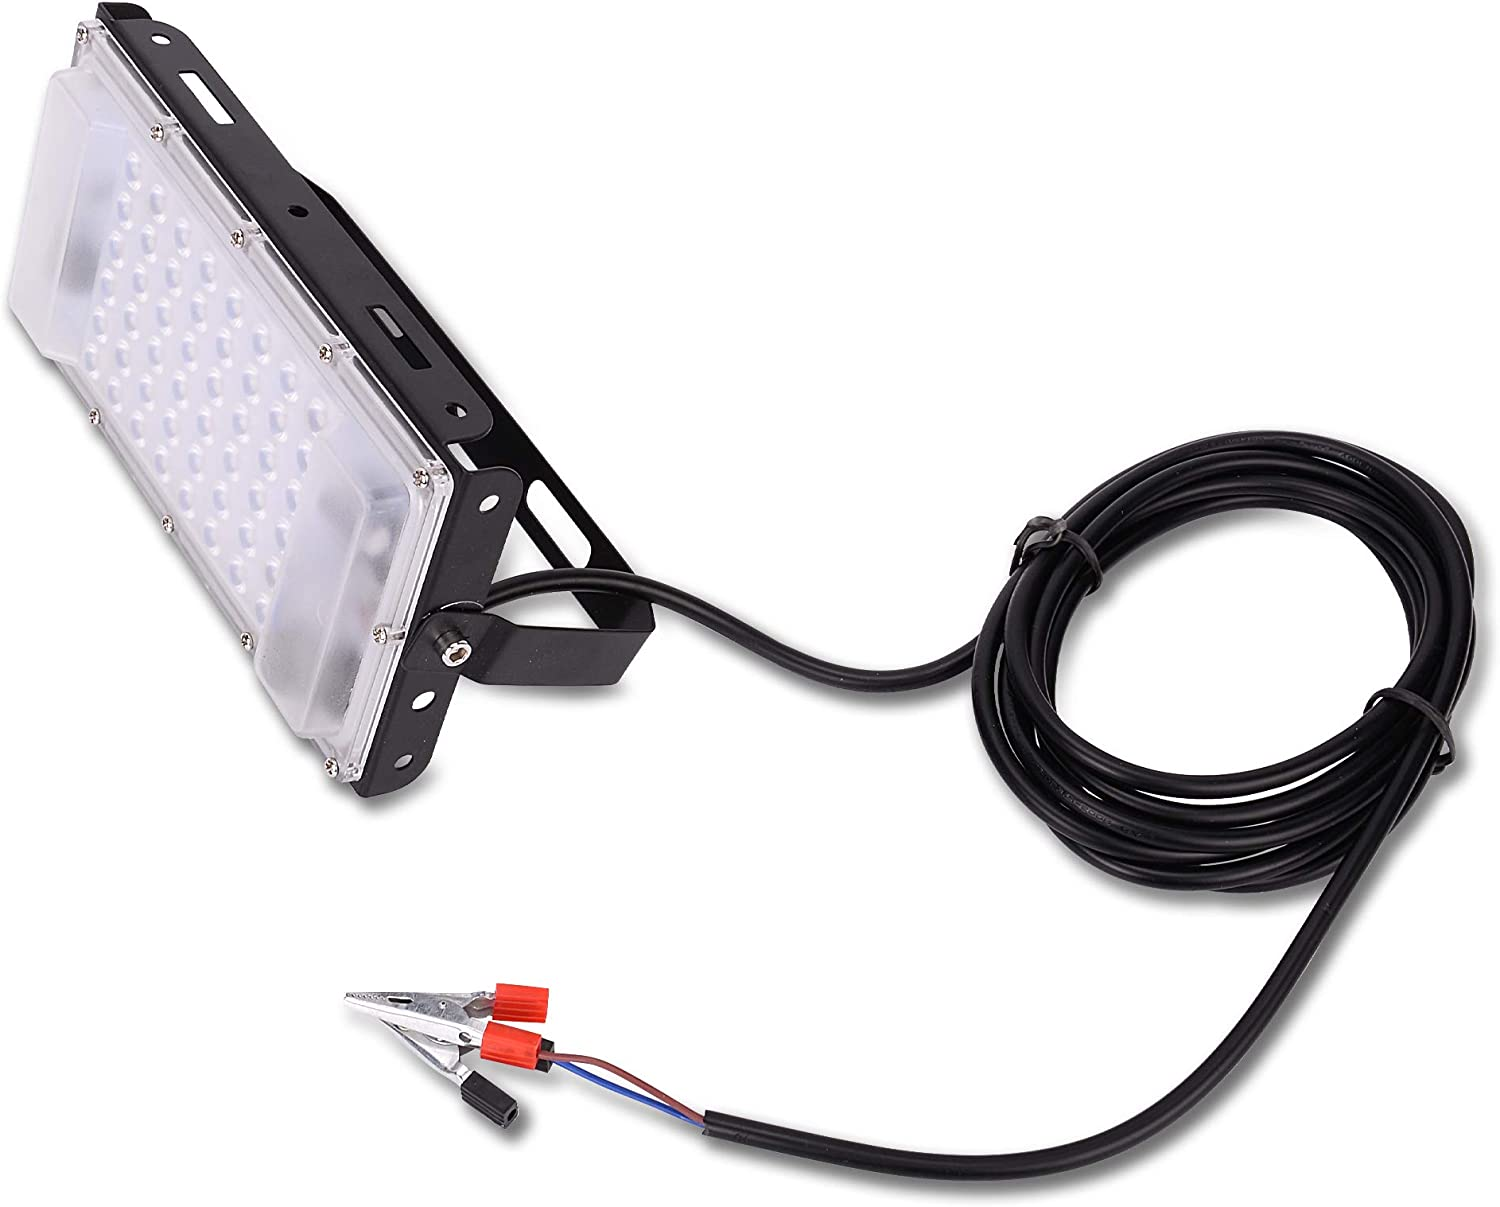 Portable Waterproof DC 12 Volt LED Flood Light 50 Watt Multi Purpose Outdoors Indoors 7.8x4.1x2.2 50W Projector Lamp Ready to Mount 10 Feet Wiring 12V Deep Cycle Red Black Clamps Aluminum Bright